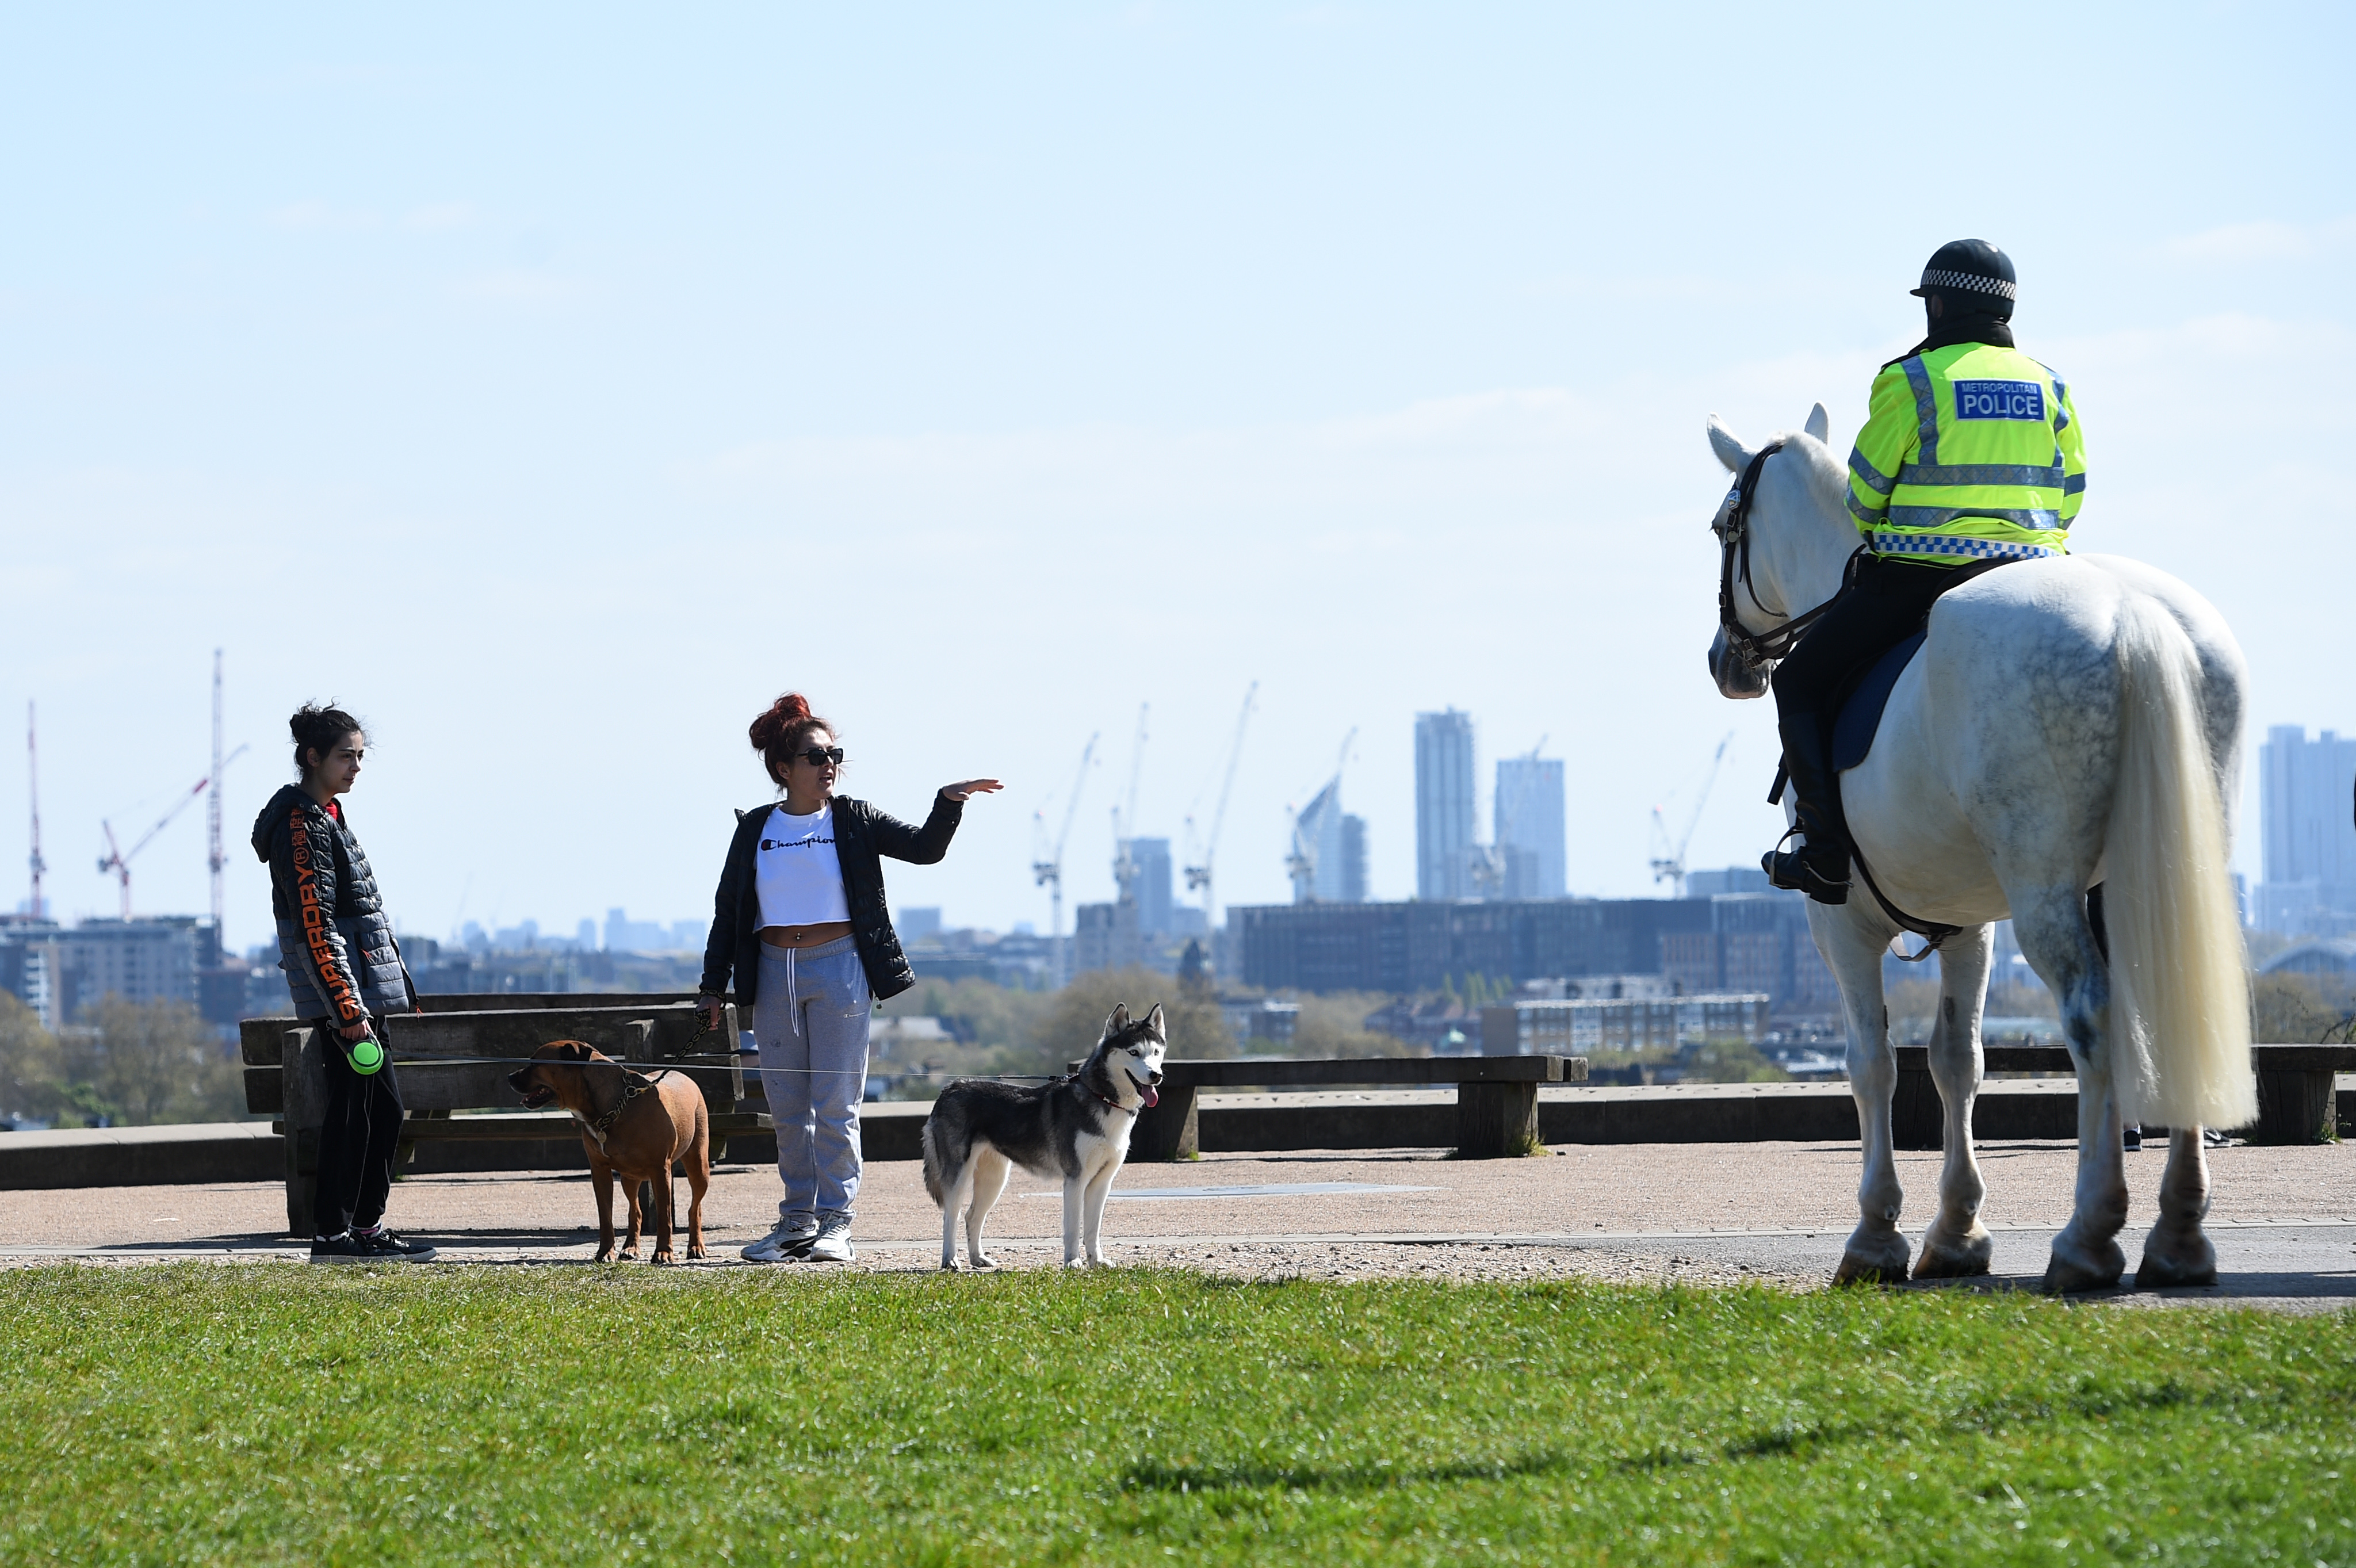 Mounted police officers speak to people on Primrose Hill, London, as the UK continues in lockdown to help curb the spread of the coronavirus.